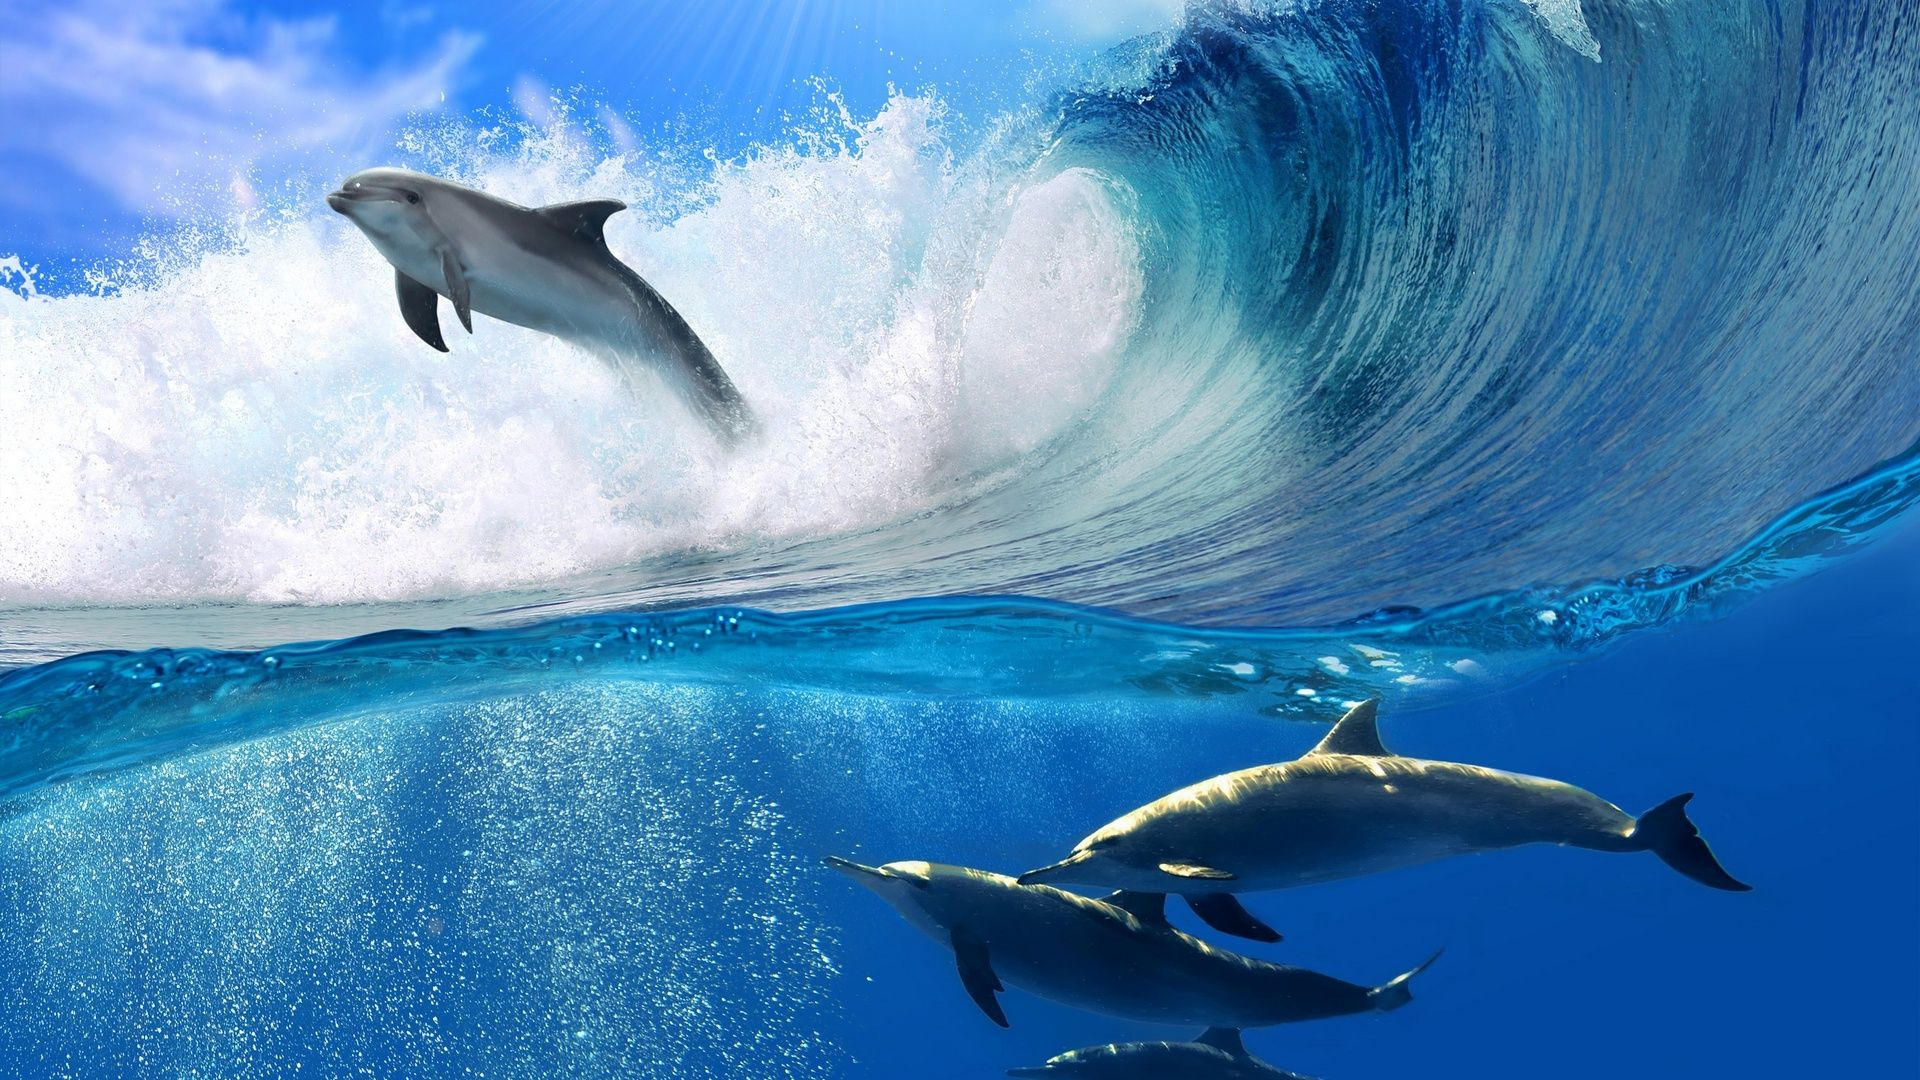 Dolphins In The Sea Images